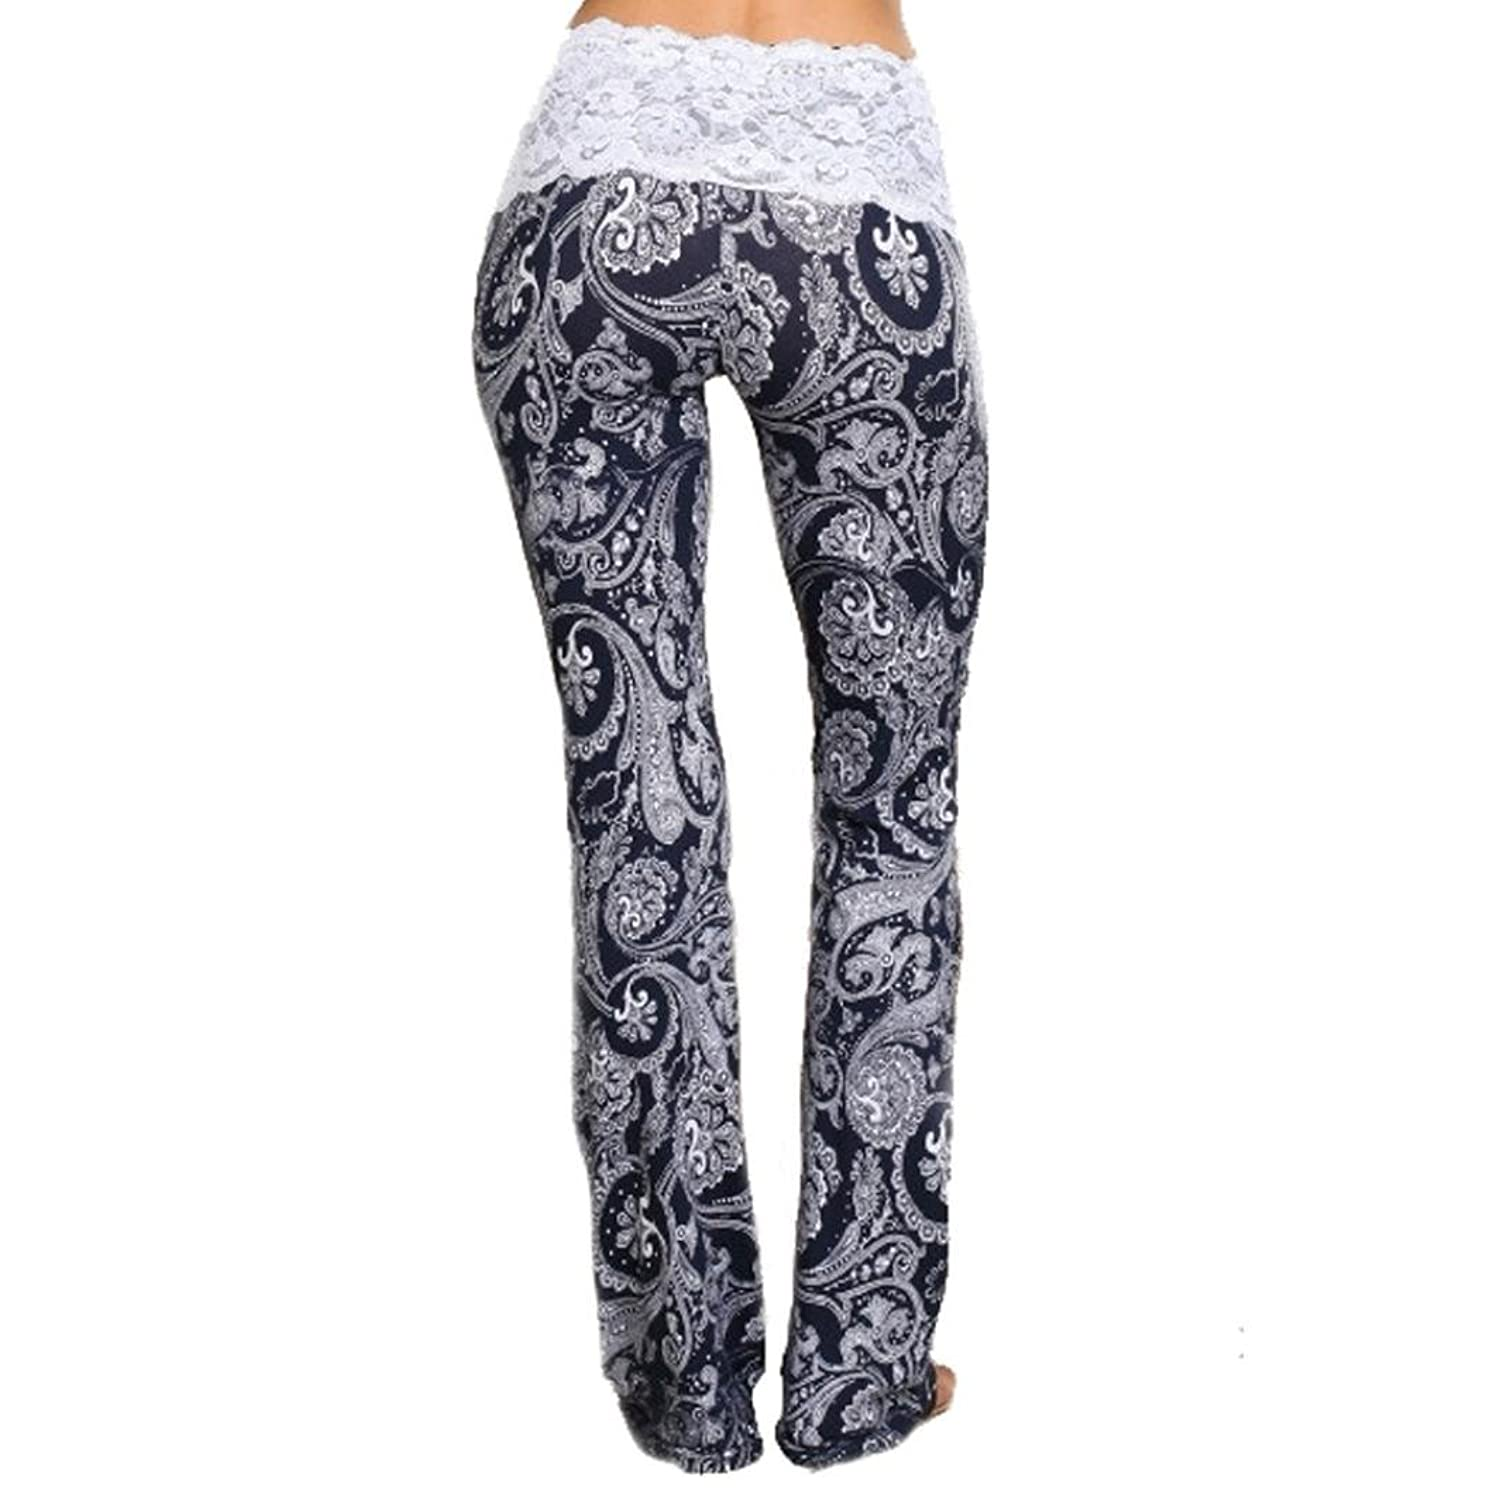 Gillberry Women Floral Printed Lace Splice Stretch High Waist Pants Trousers